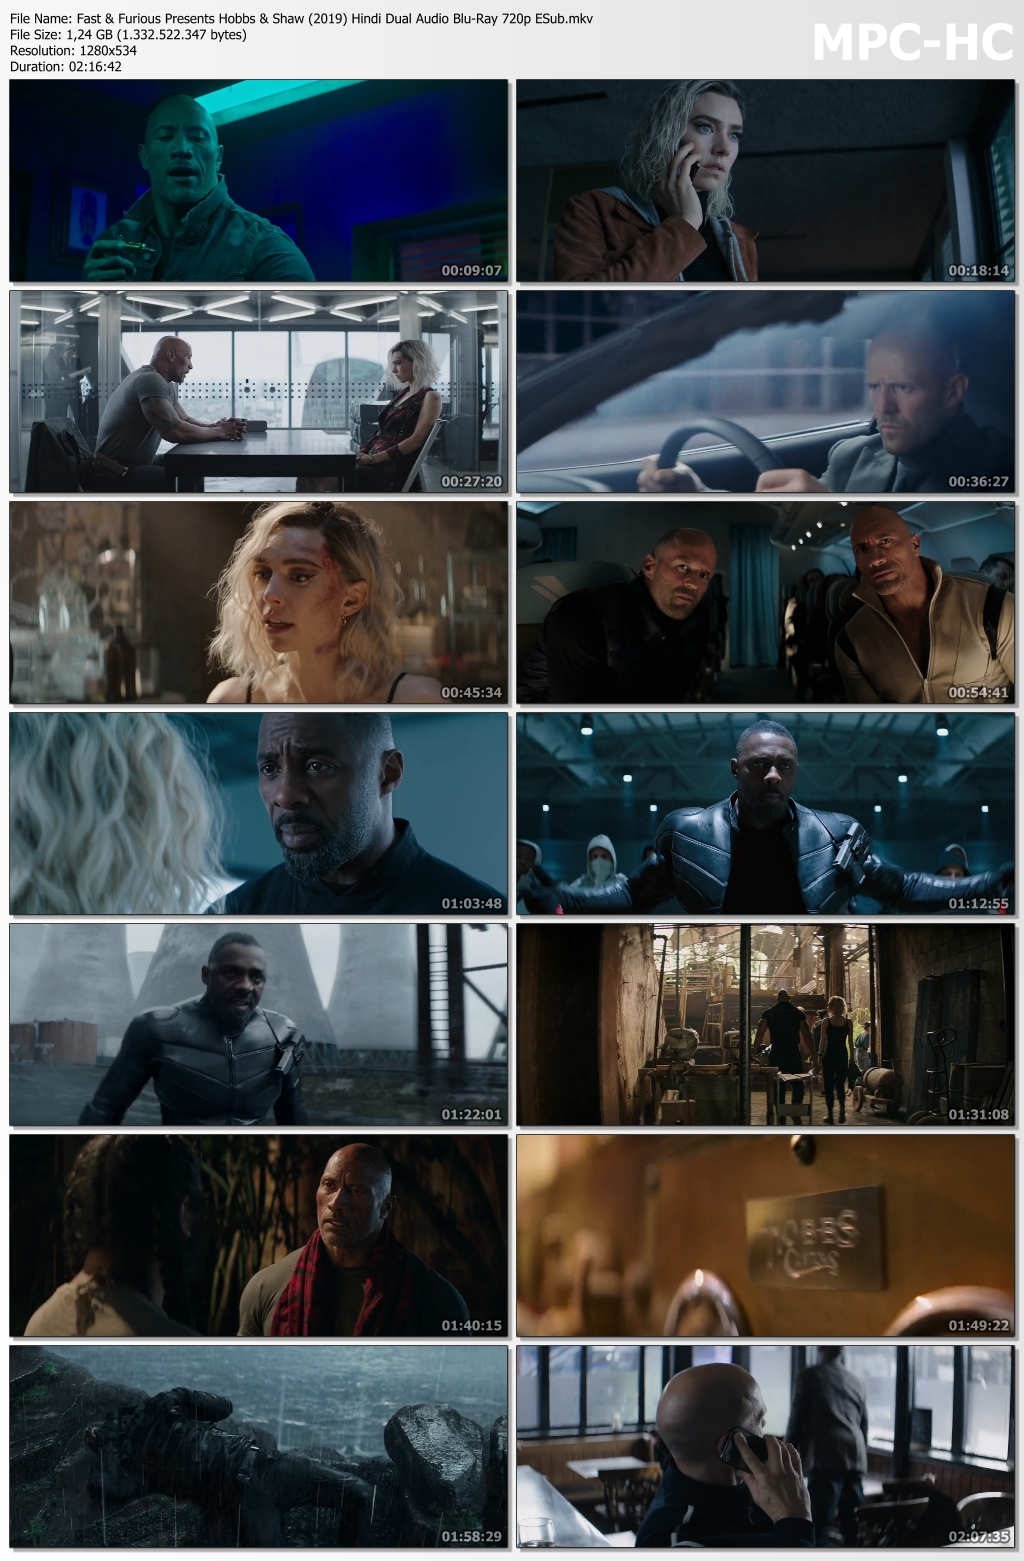 Fast-Furious-Presents-Hobbs-Shaw-2019-Hindi-Dual-Audio-Blu-Ray-720p-ESub-mkv-thumbs